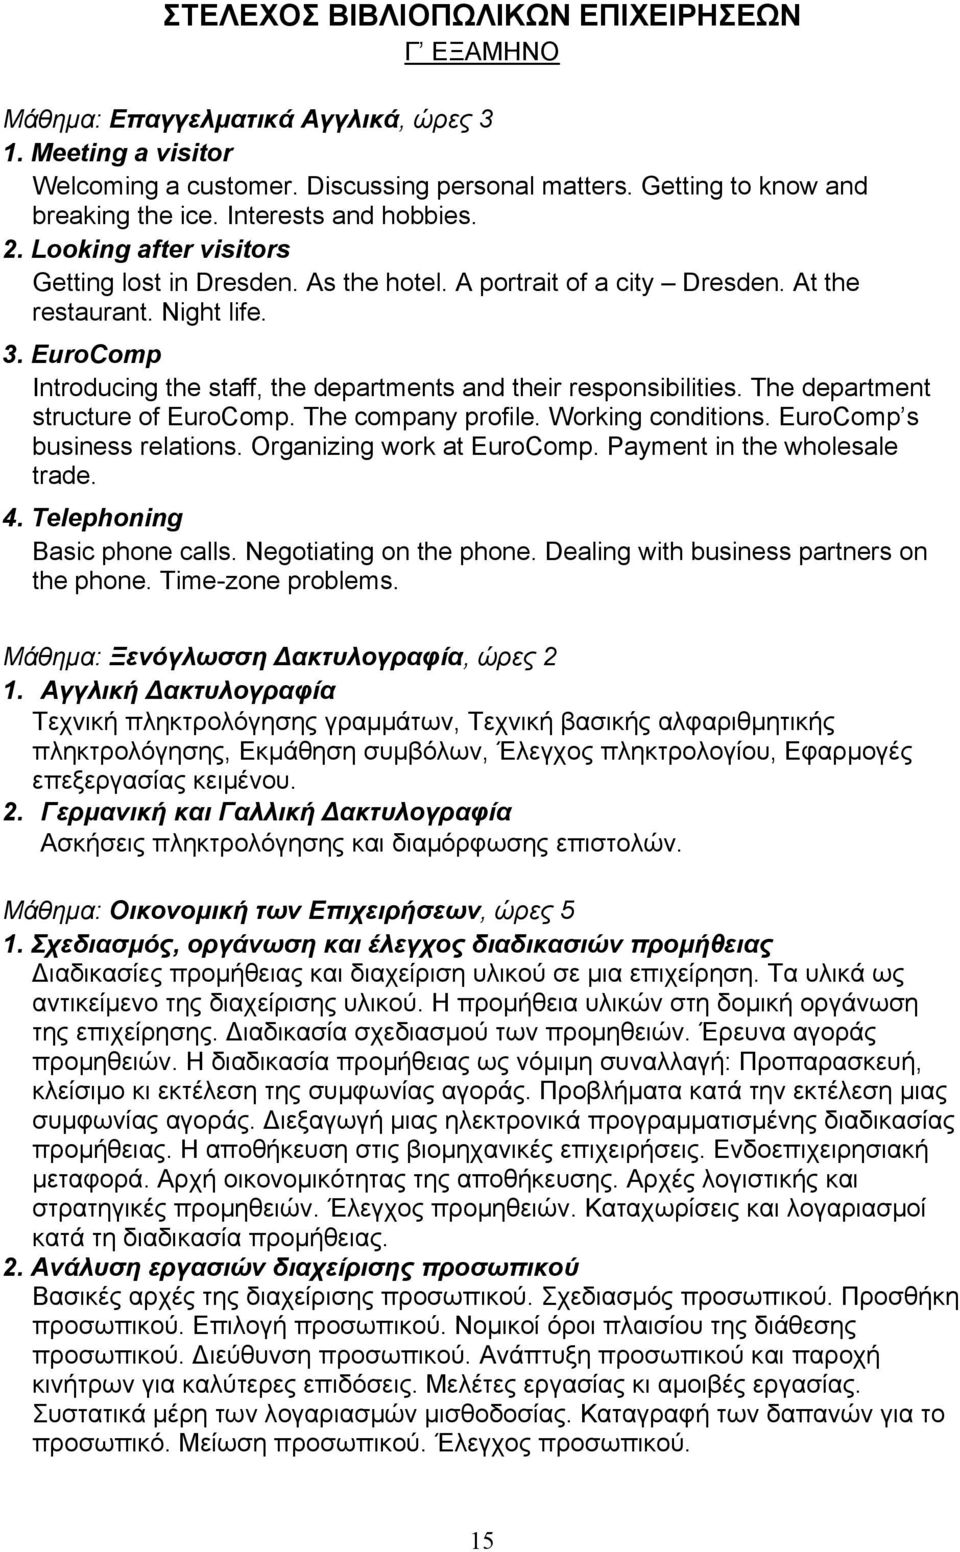 EuroComp Introducing the staff, the departments and their responsibilities. The department structure of EuroComp. The company profile. Working conditions. EuroComp s business relations.